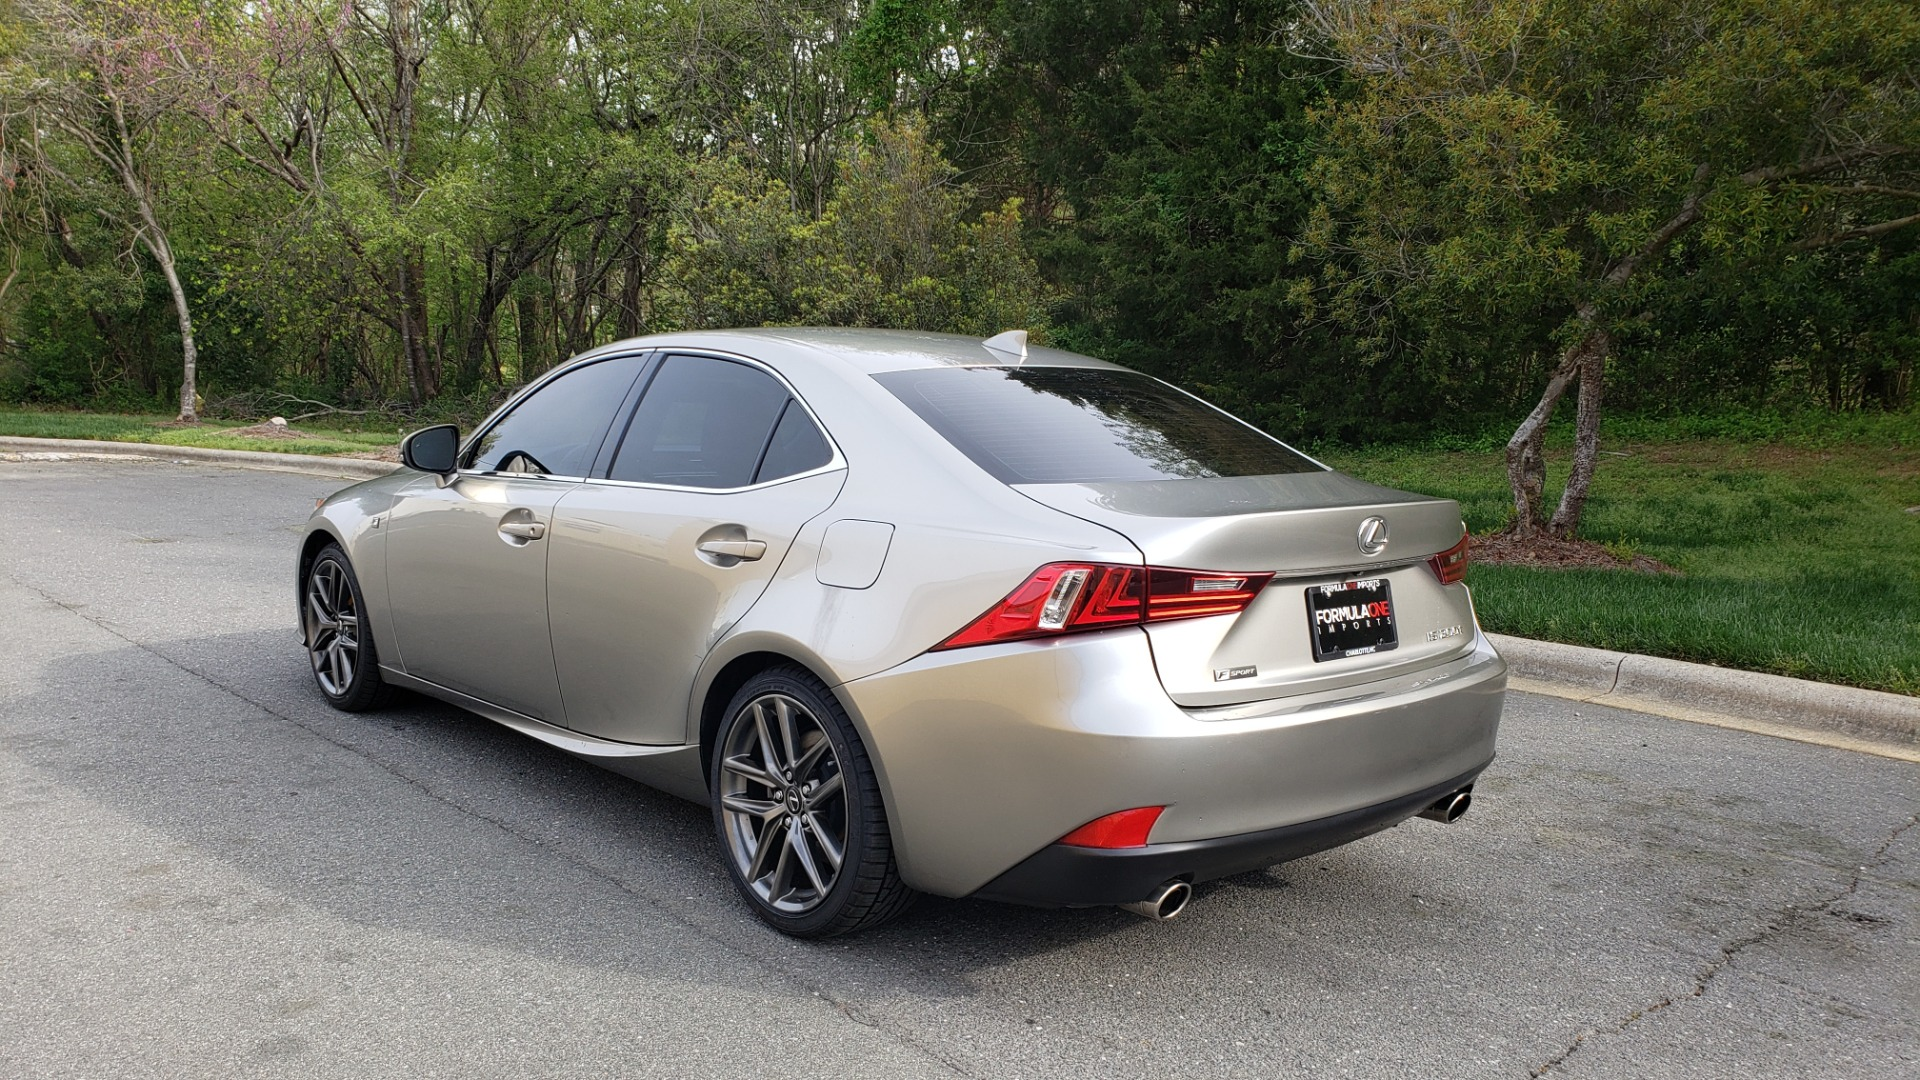 Used 2016 Lexus IS 200T F-SPORT / BSM / SUNROOF / VENTILATED SEATS / REARVIEW for sale Sold at Formula Imports in Charlotte NC 28227 3